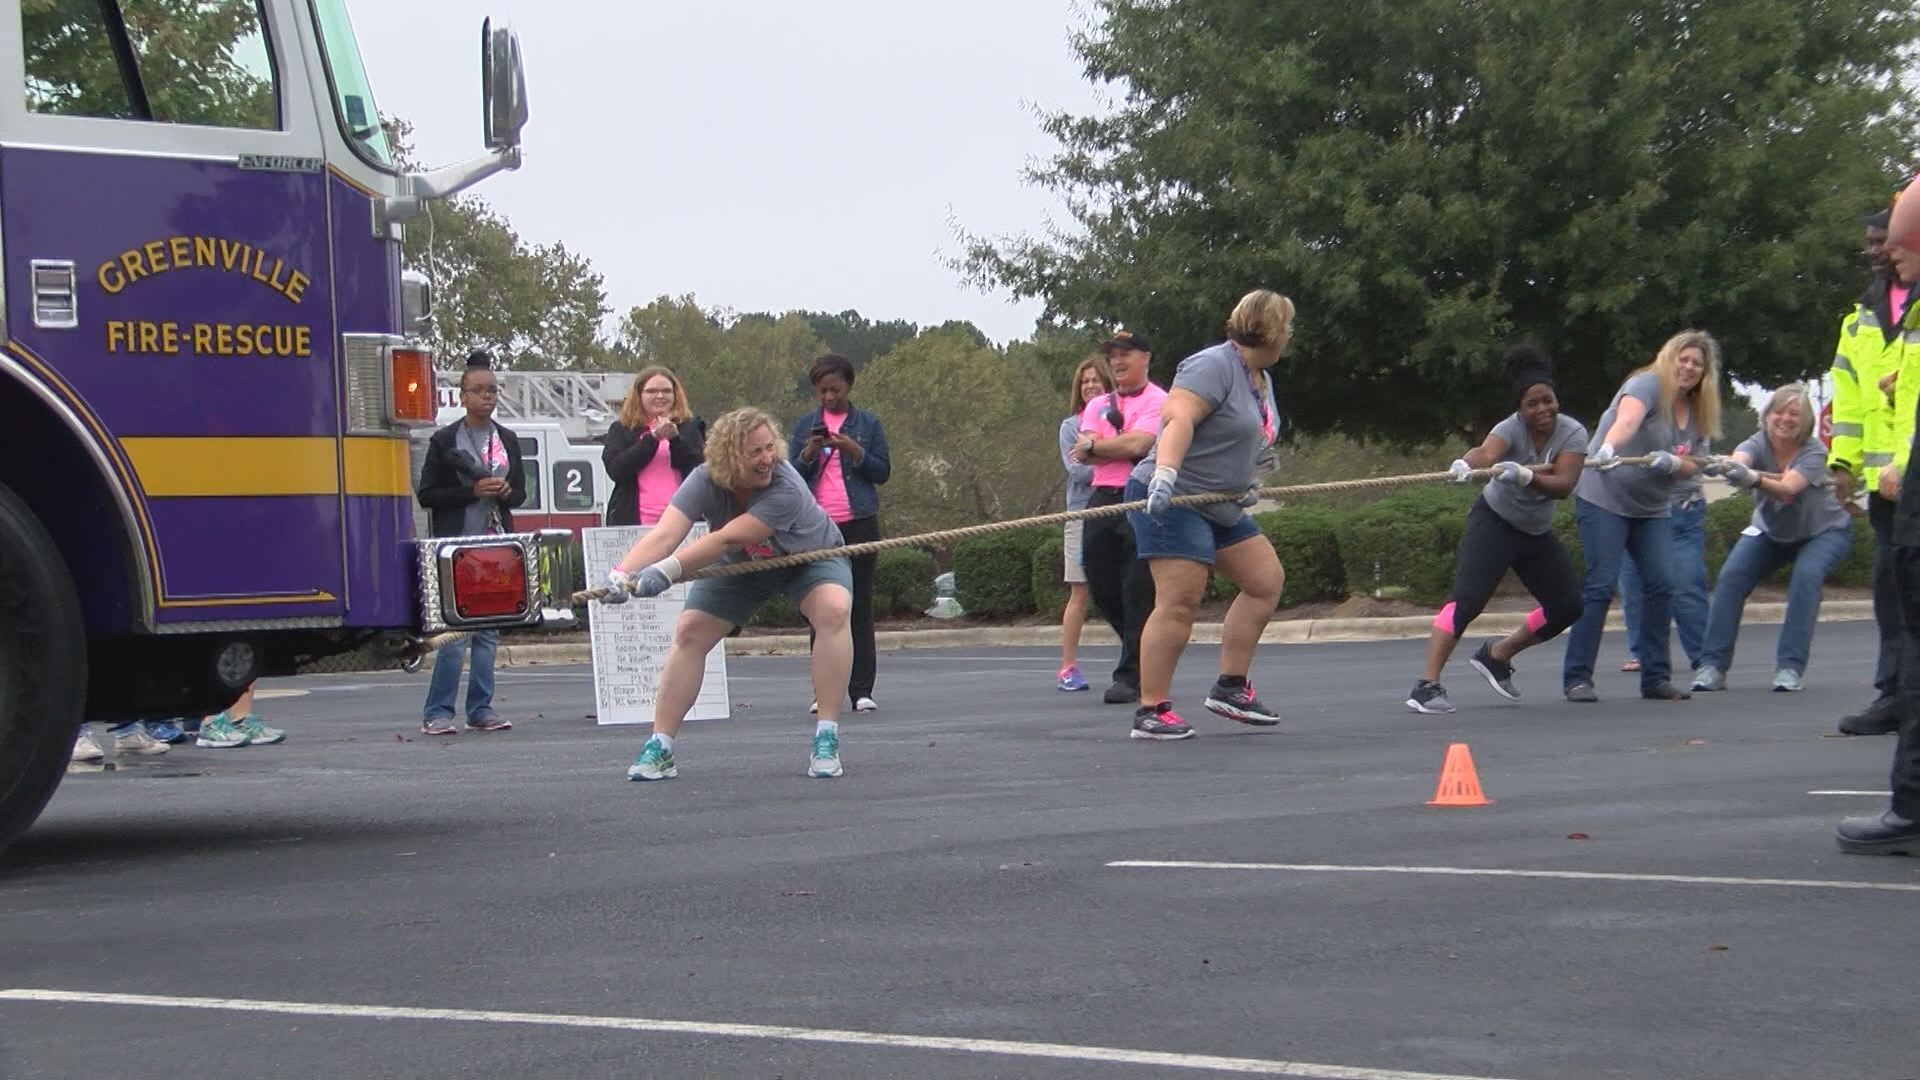 Thousands come together in walk to raise breast cancer awareness